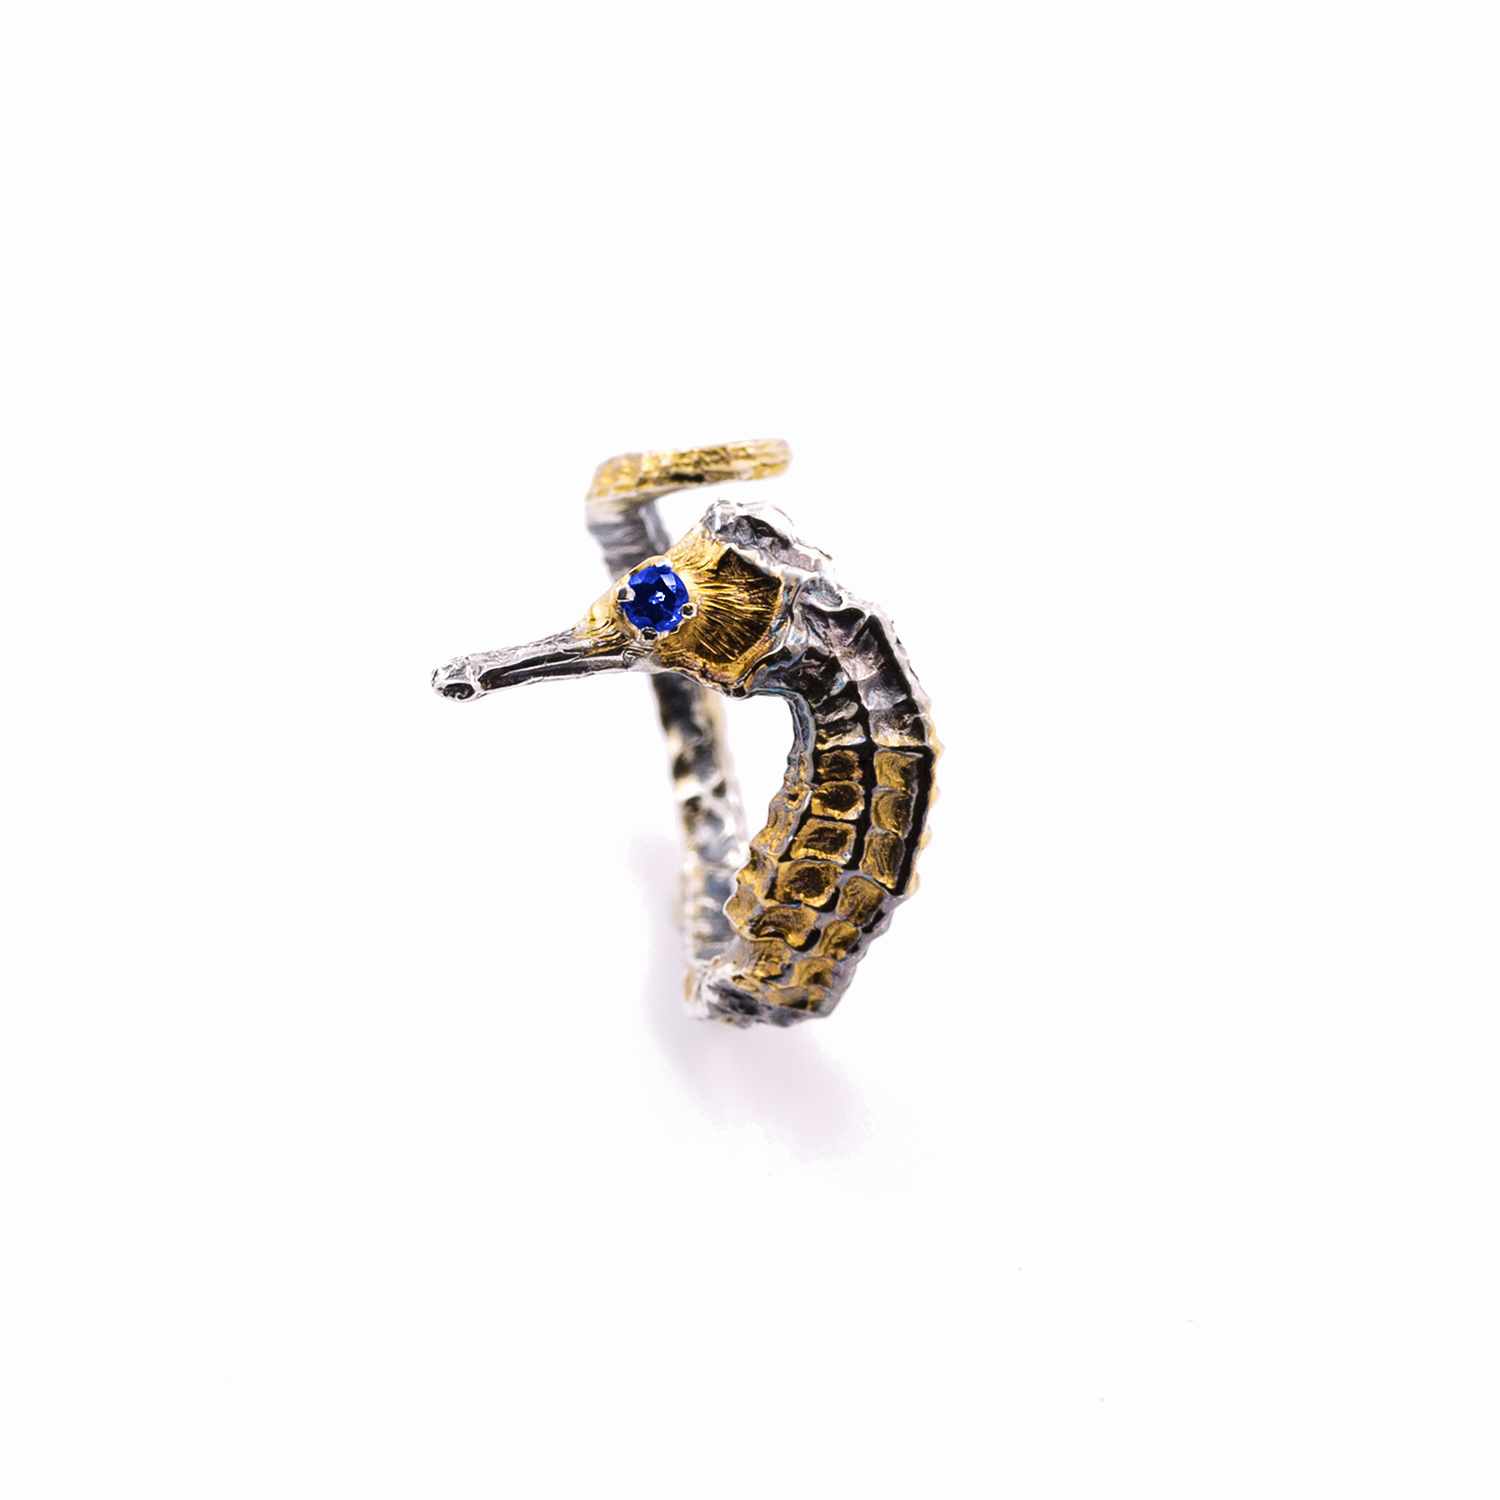 Seahorse RING  Sterling silver, blue sapphire, gold vermeil, patina